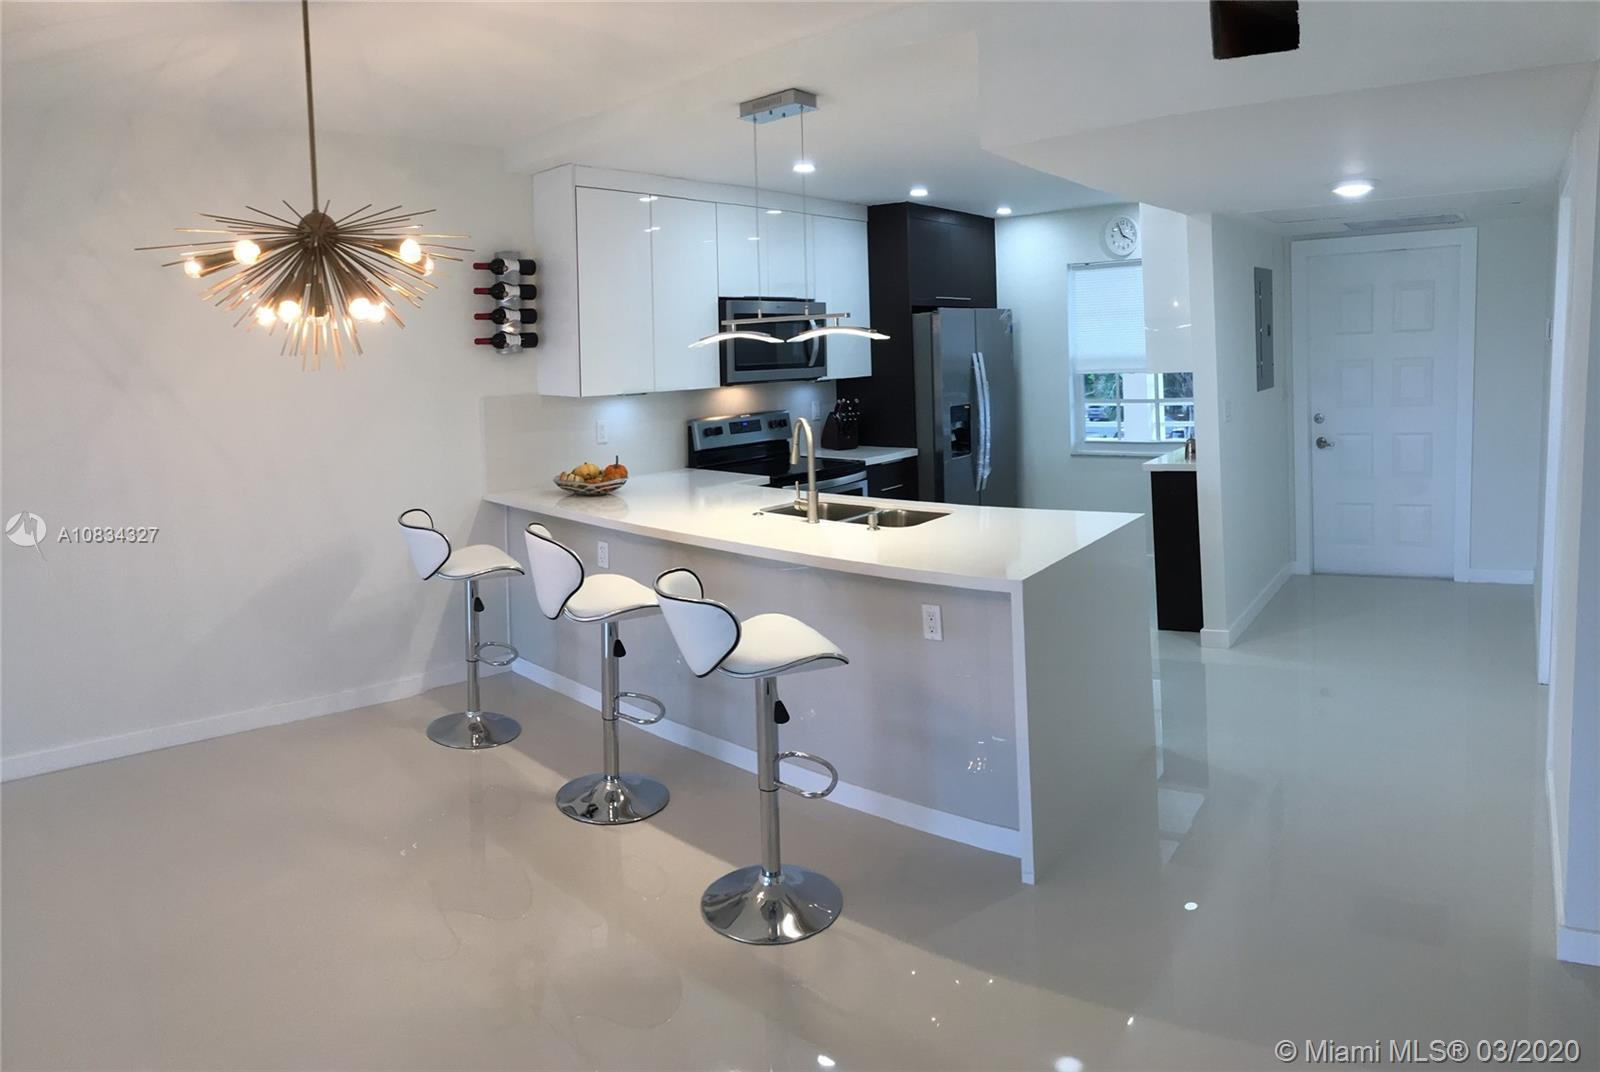 COMPLETELY REMODELED 2 BED-2 BATH APT LOCATED IN THE HEART OF PALM AIRE. TOP OF THE LINE MATERIALS W